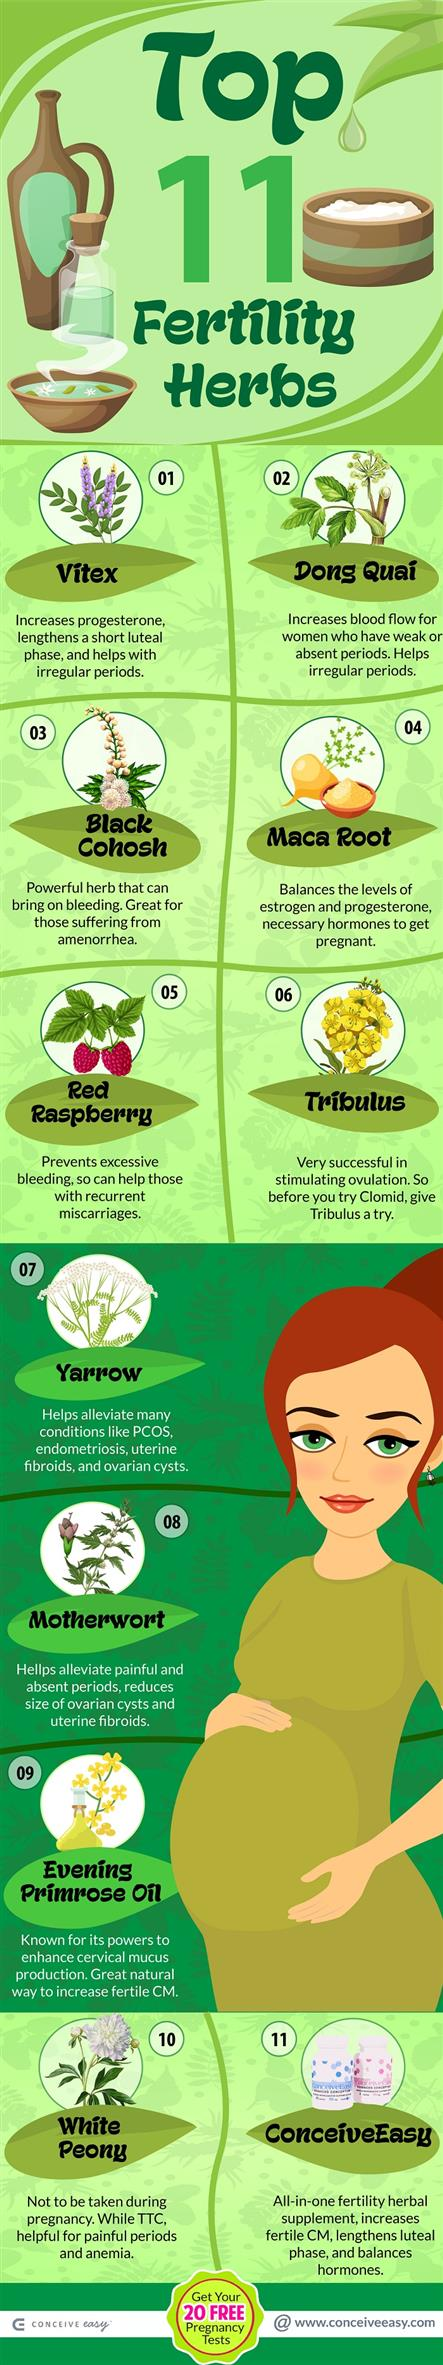 Top 11 Fertility Herbs Infographic